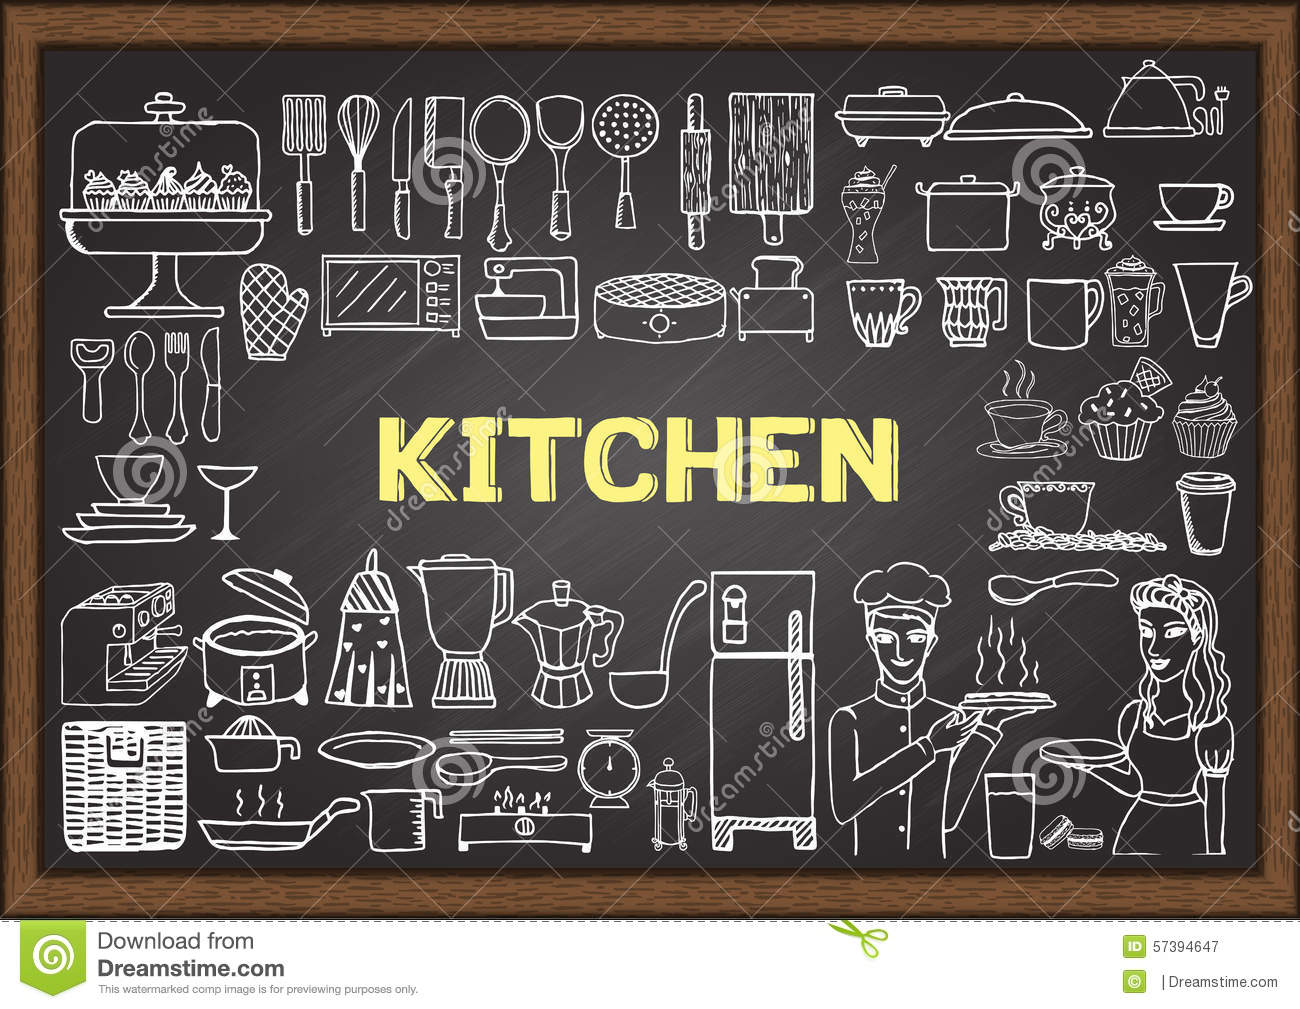 Hand Drawn Kitchen Equipment On Chalkboard Doodles Or Elements For Restaurant Design Stock